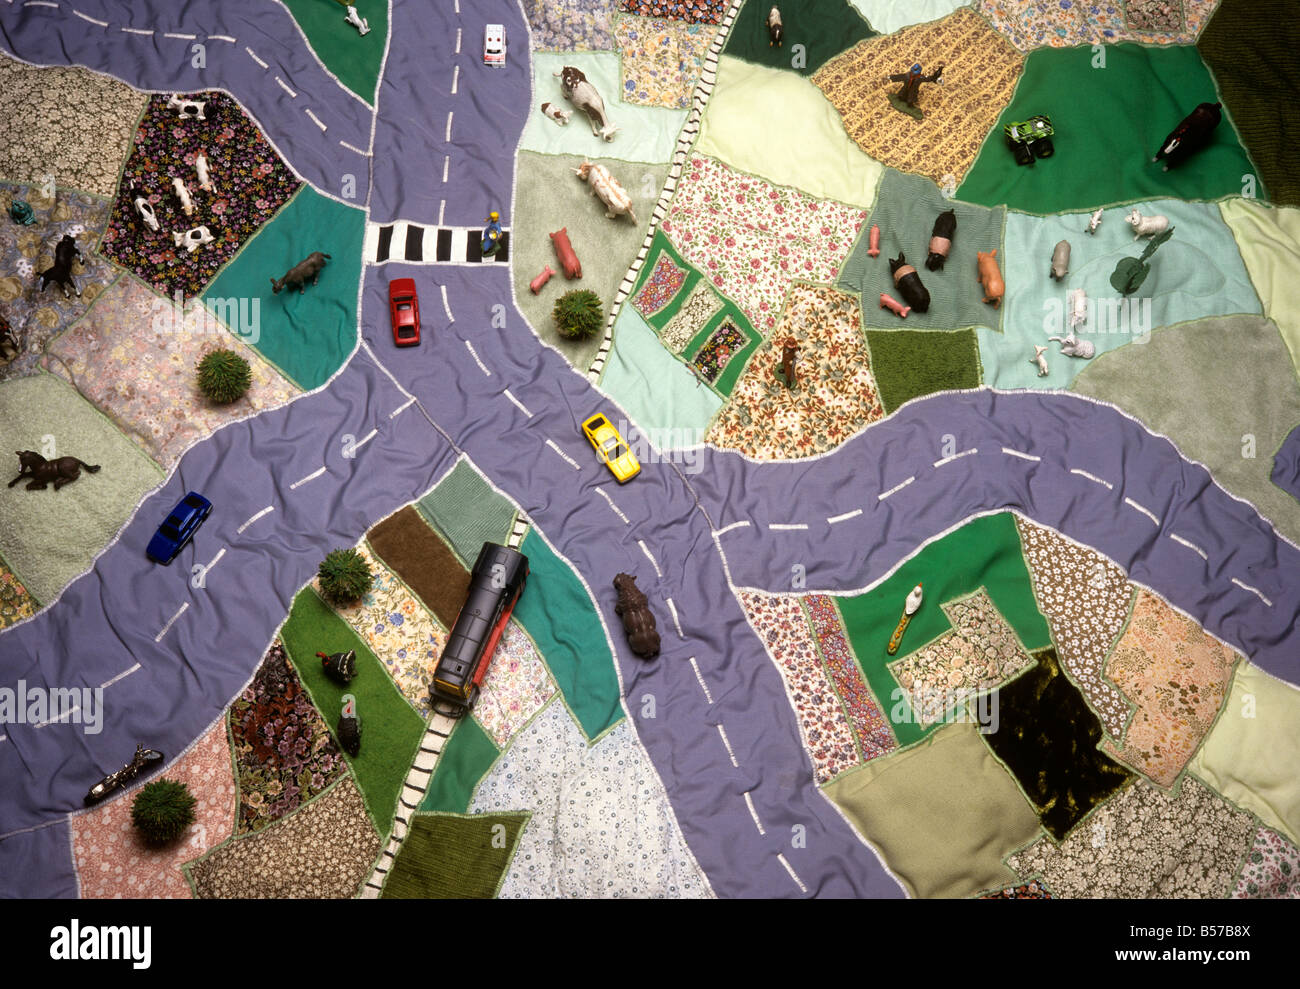 Crafts childrens applique map toy play mat stock photo 20446186 alamy crafts childrens applique map toy play mat gumiabroncs Image collections